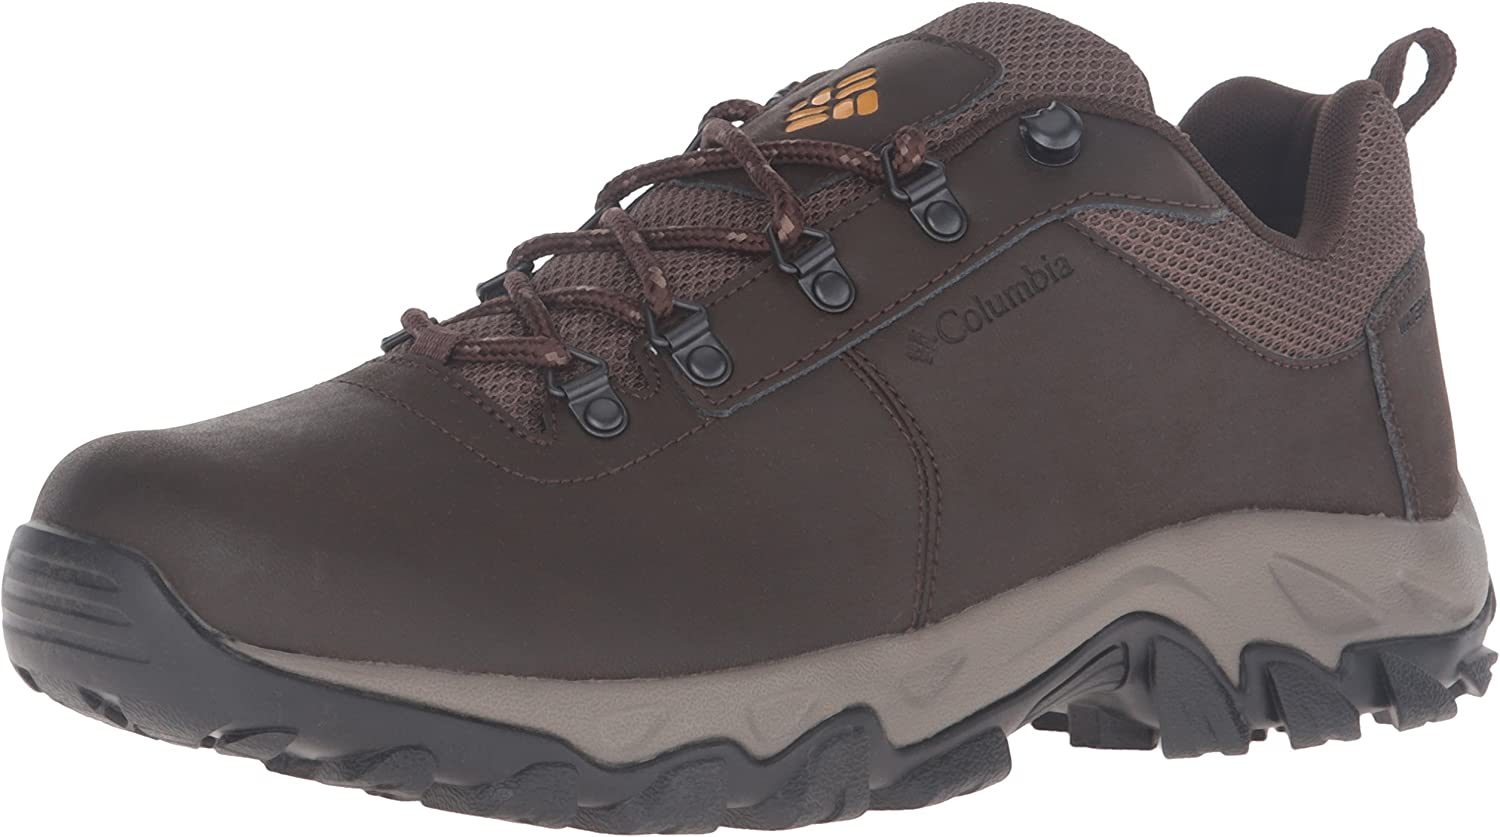 Columbia Men's Newton Ridge Plus Low Waterproof Waterproof Waterproof Hiking schuhe, Cordovan, Squash, 7 D US B01850NZBM  Vorzugspreis 2f4897